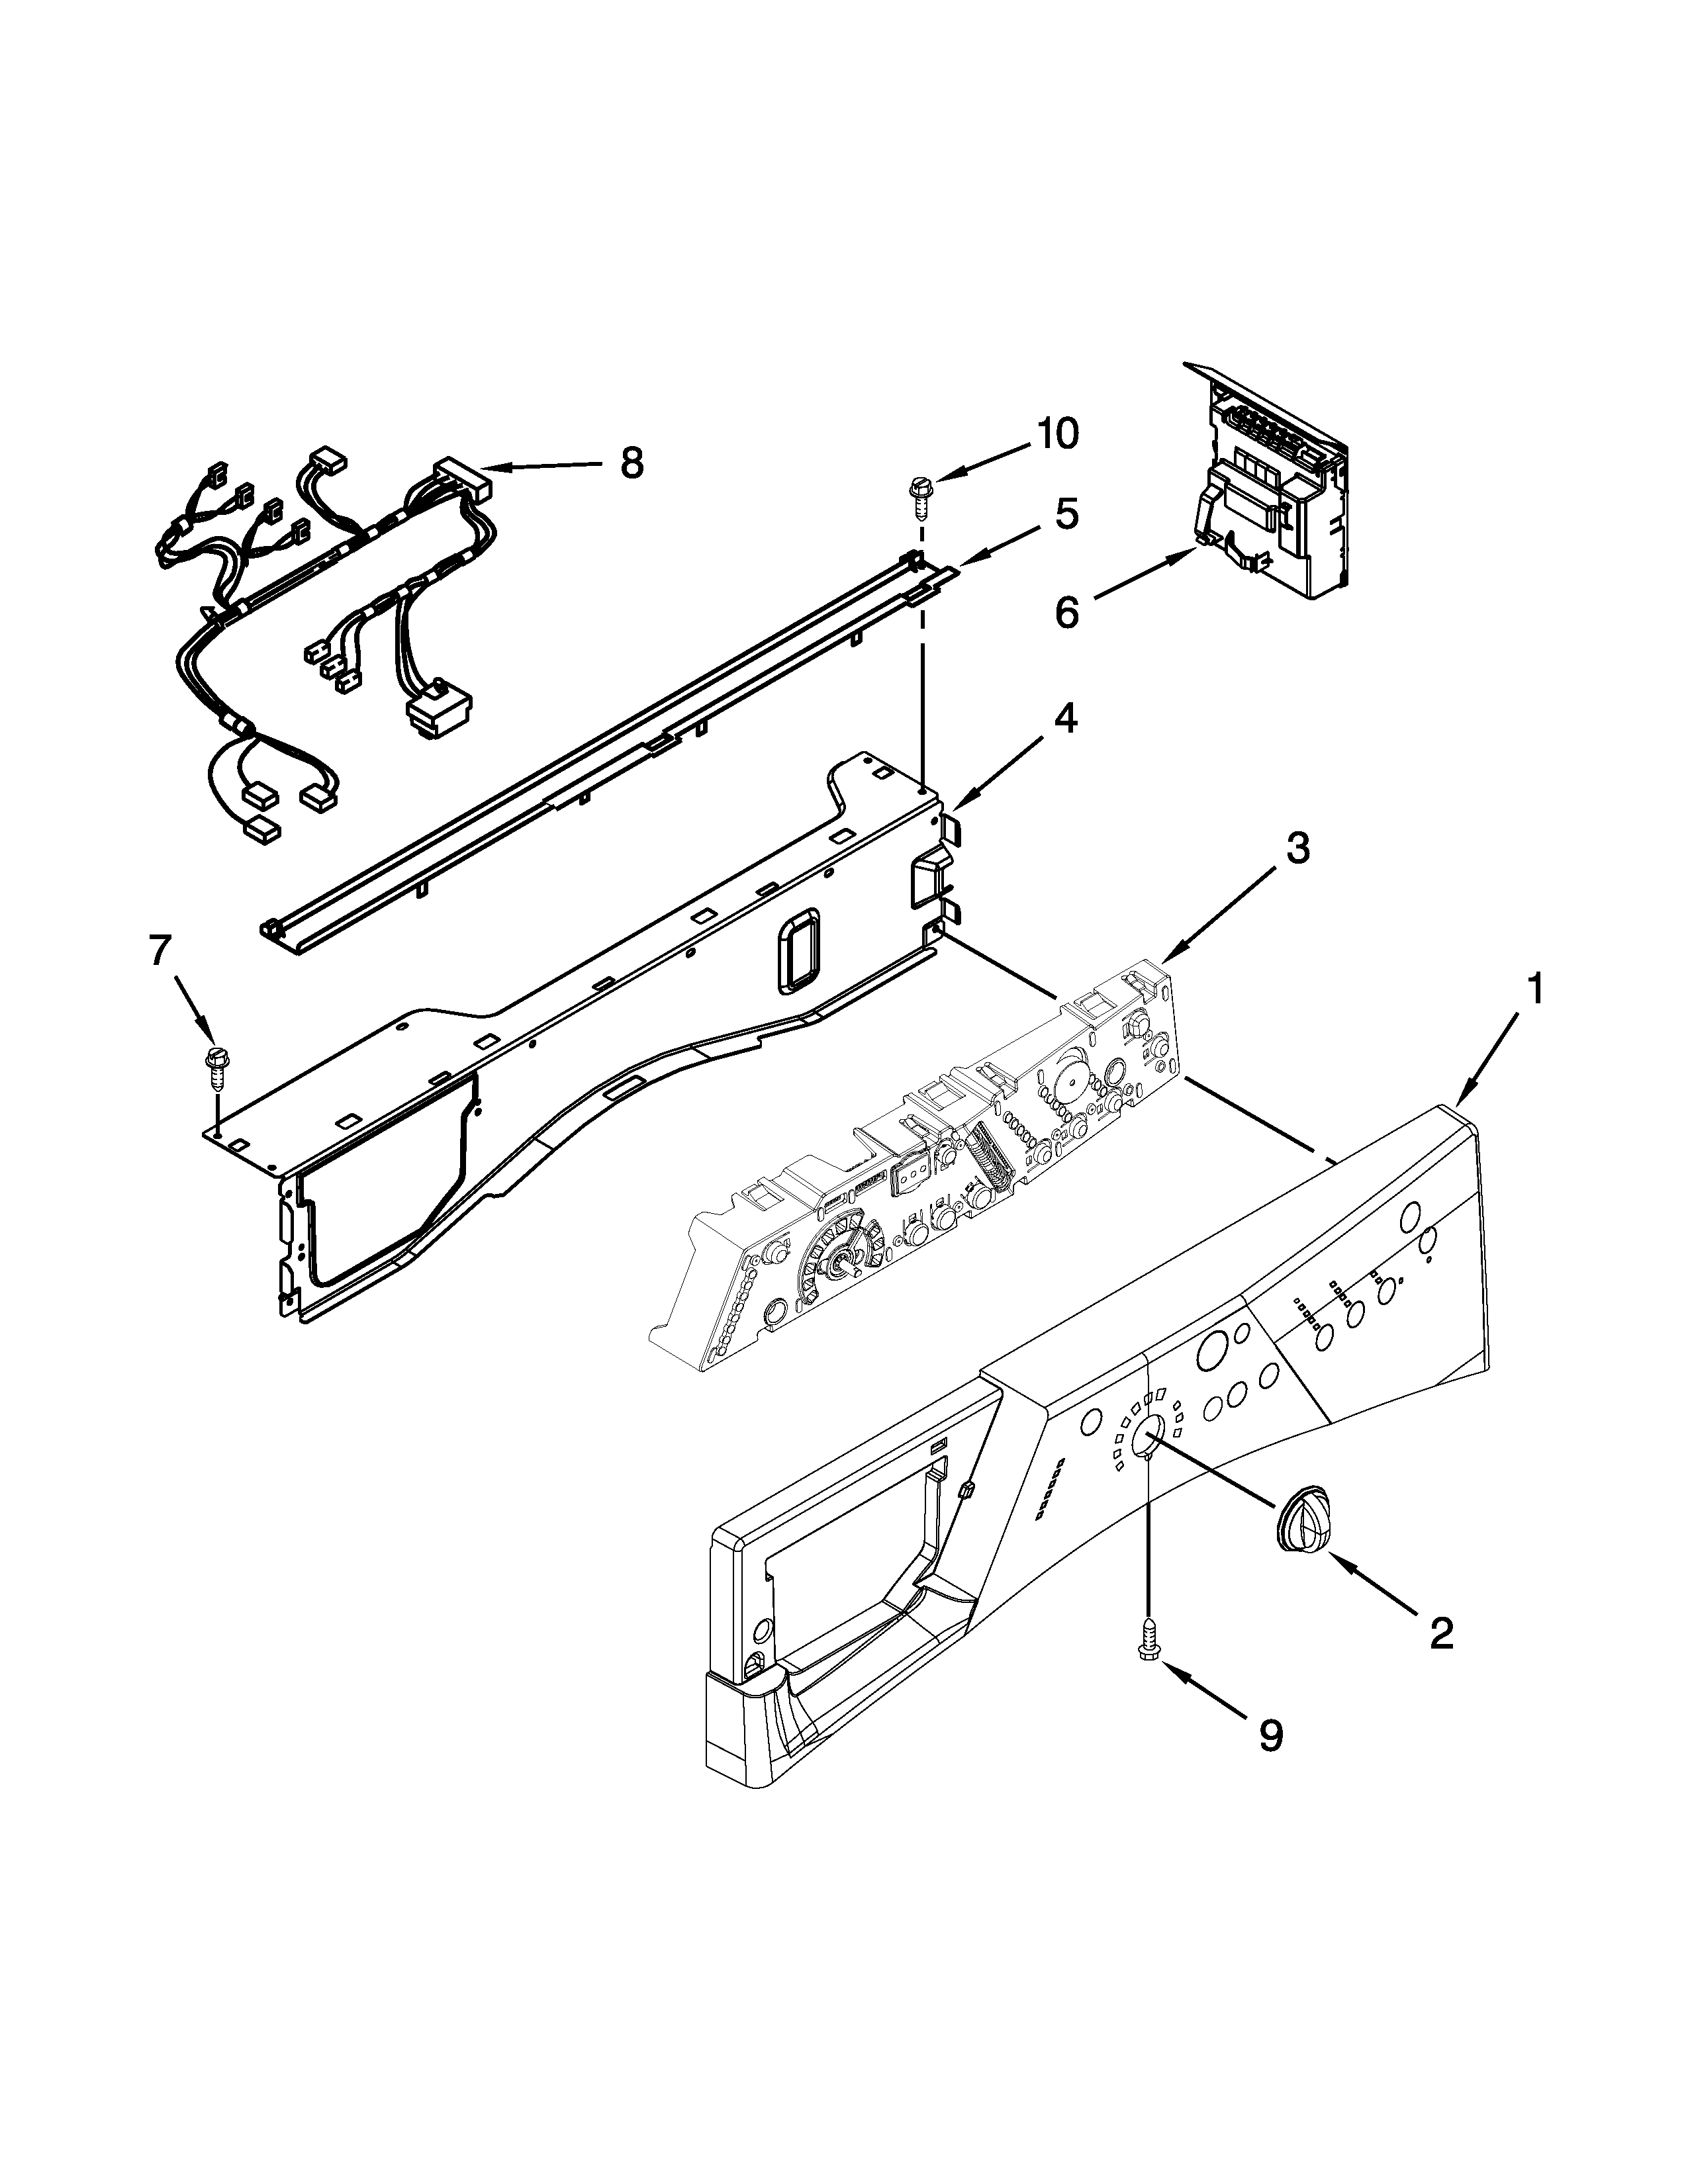 Whirlpool WFW8300SW02 control panel parts diagram